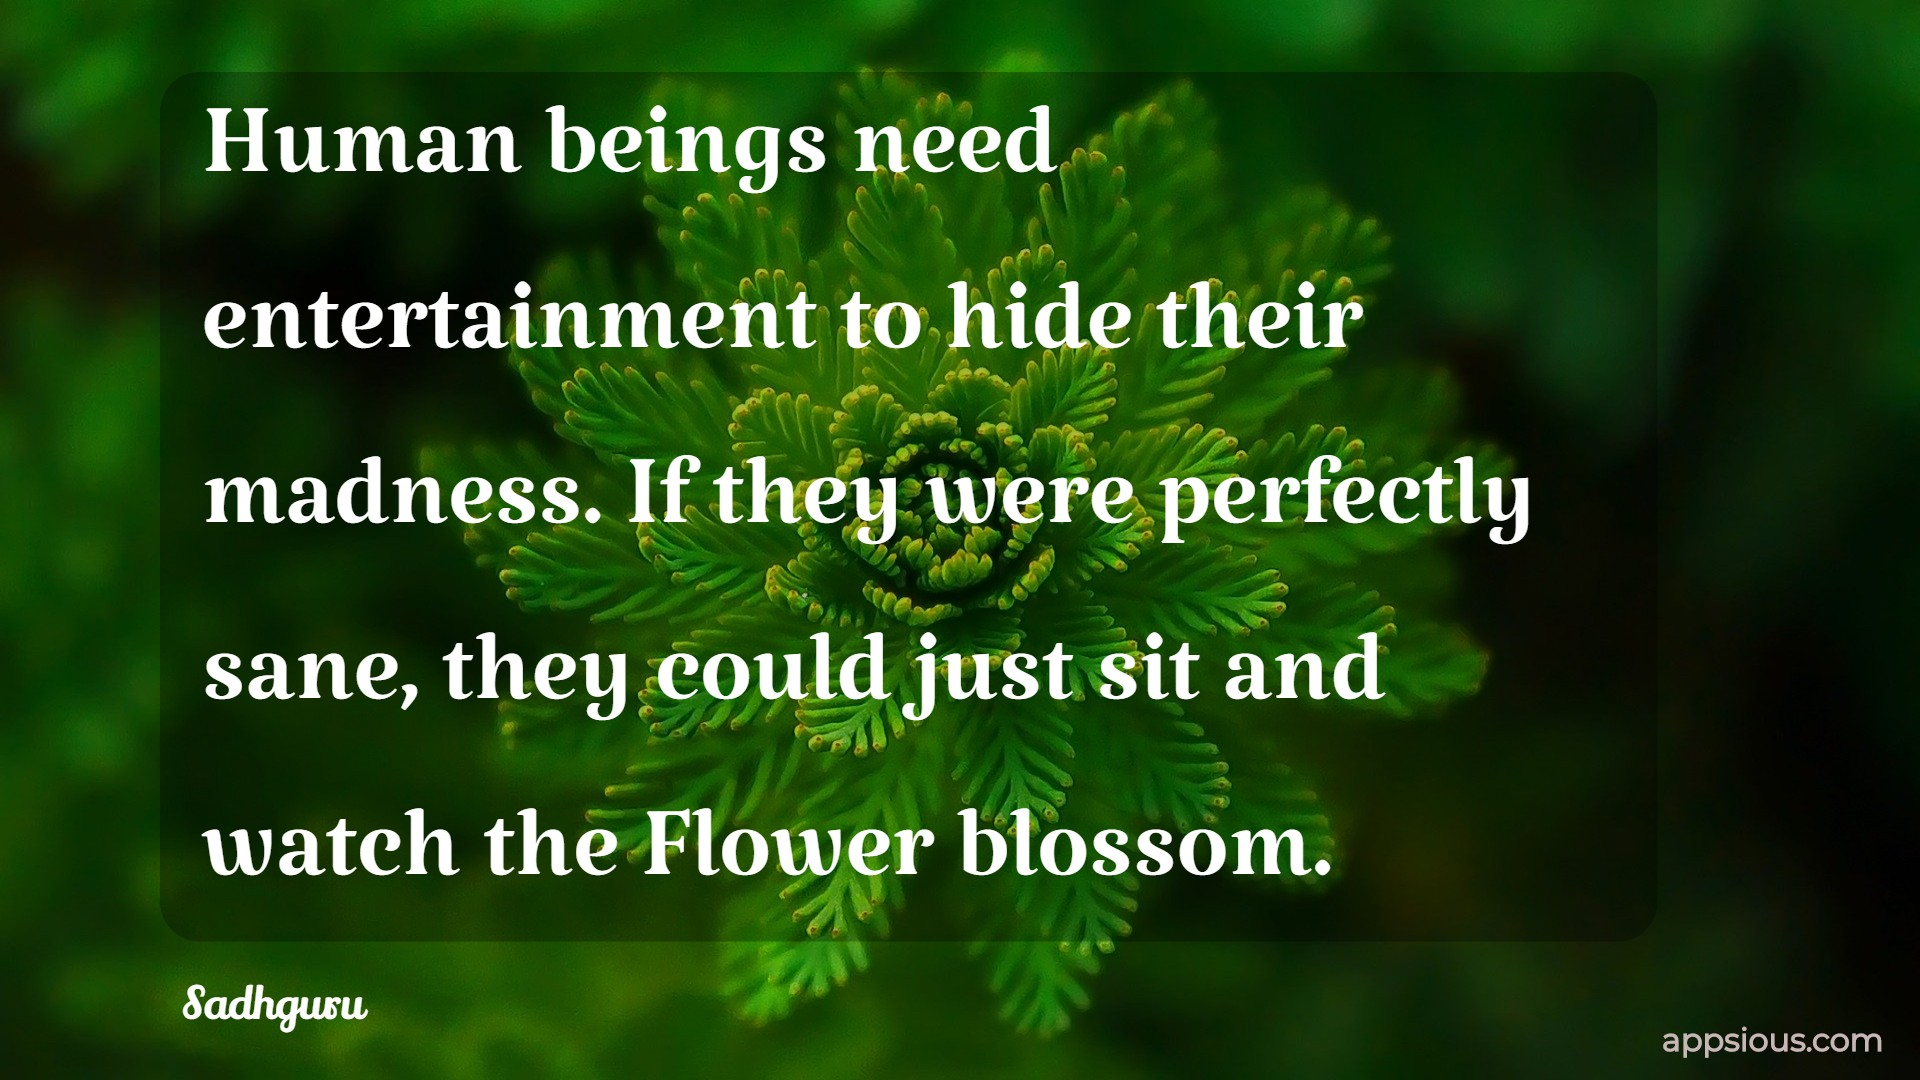 Human beings need entertainment to hide their madness. If they were perfectly sane, they could just sit and watch the Flower blossom.